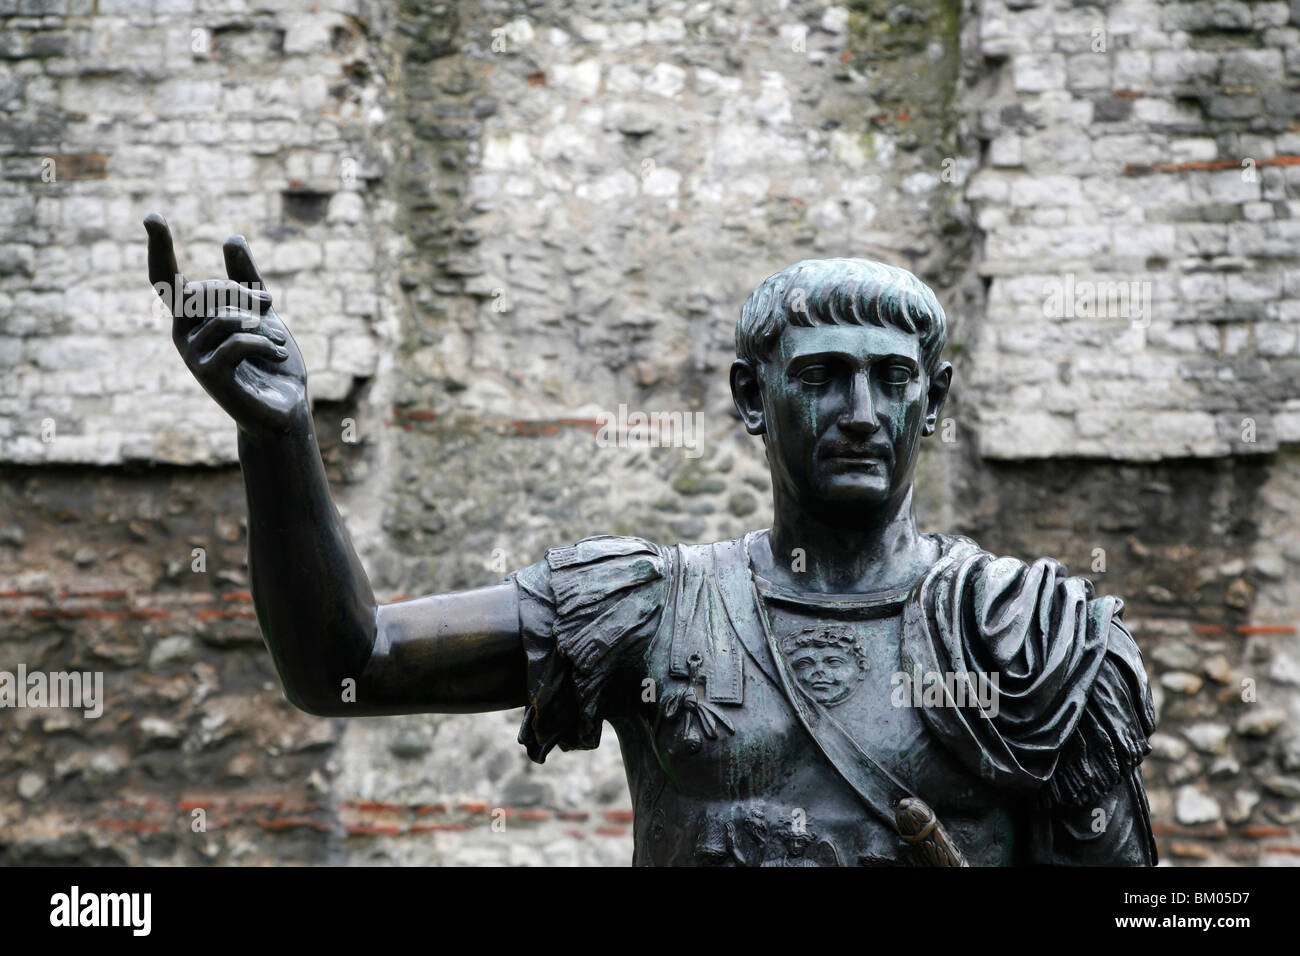 Statue of Emperor Trajan in front of remains of the old London Wall at Tower Hill, City of London, UK - Stock Image